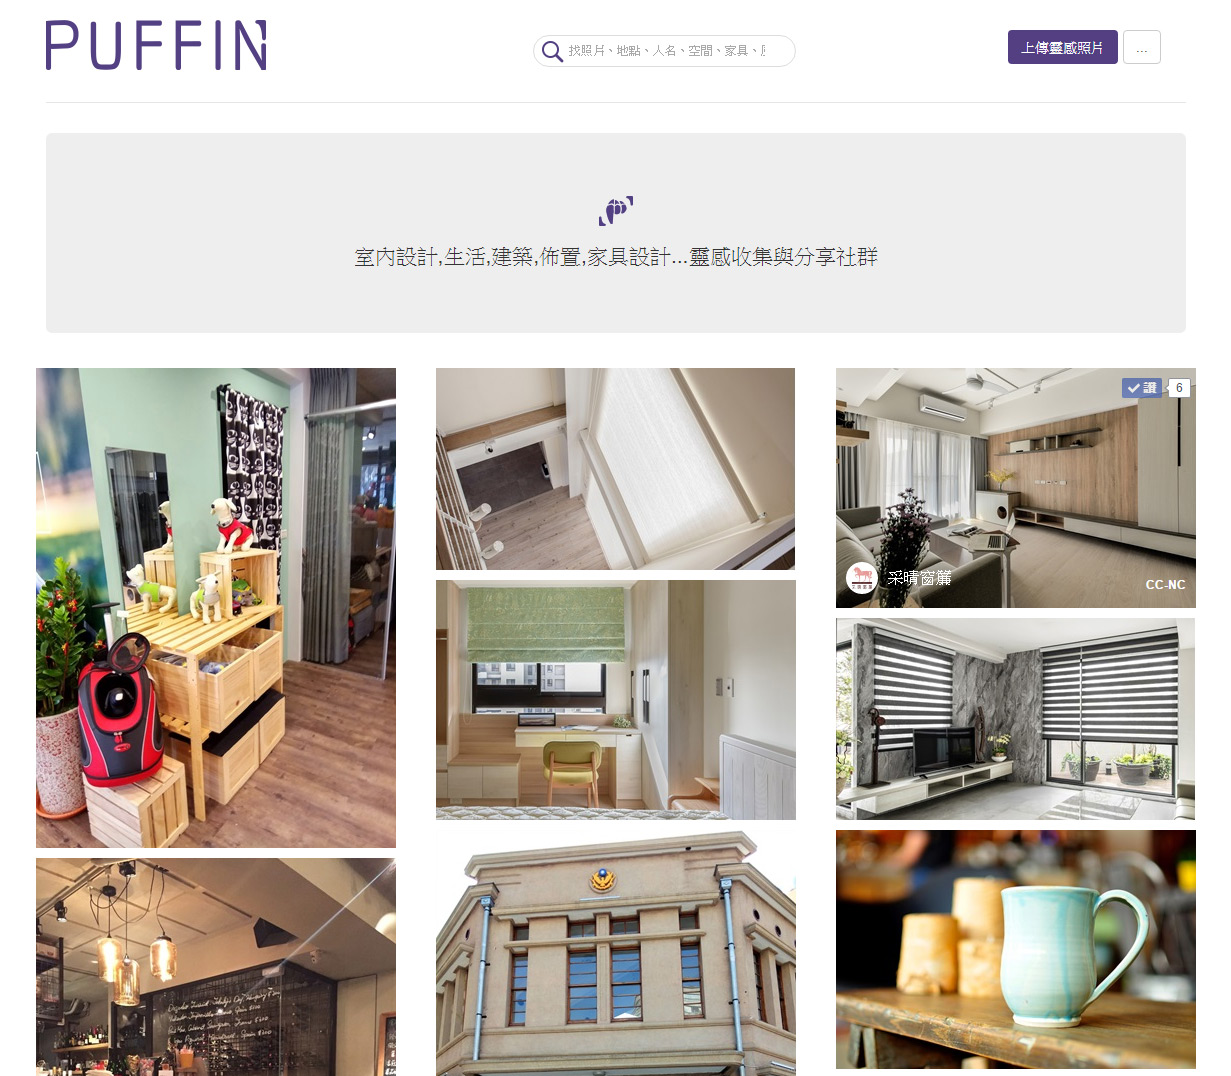 %postname%5878e7ab0d387Puffin_interior_design_idea_photo_designer_socialnetwork